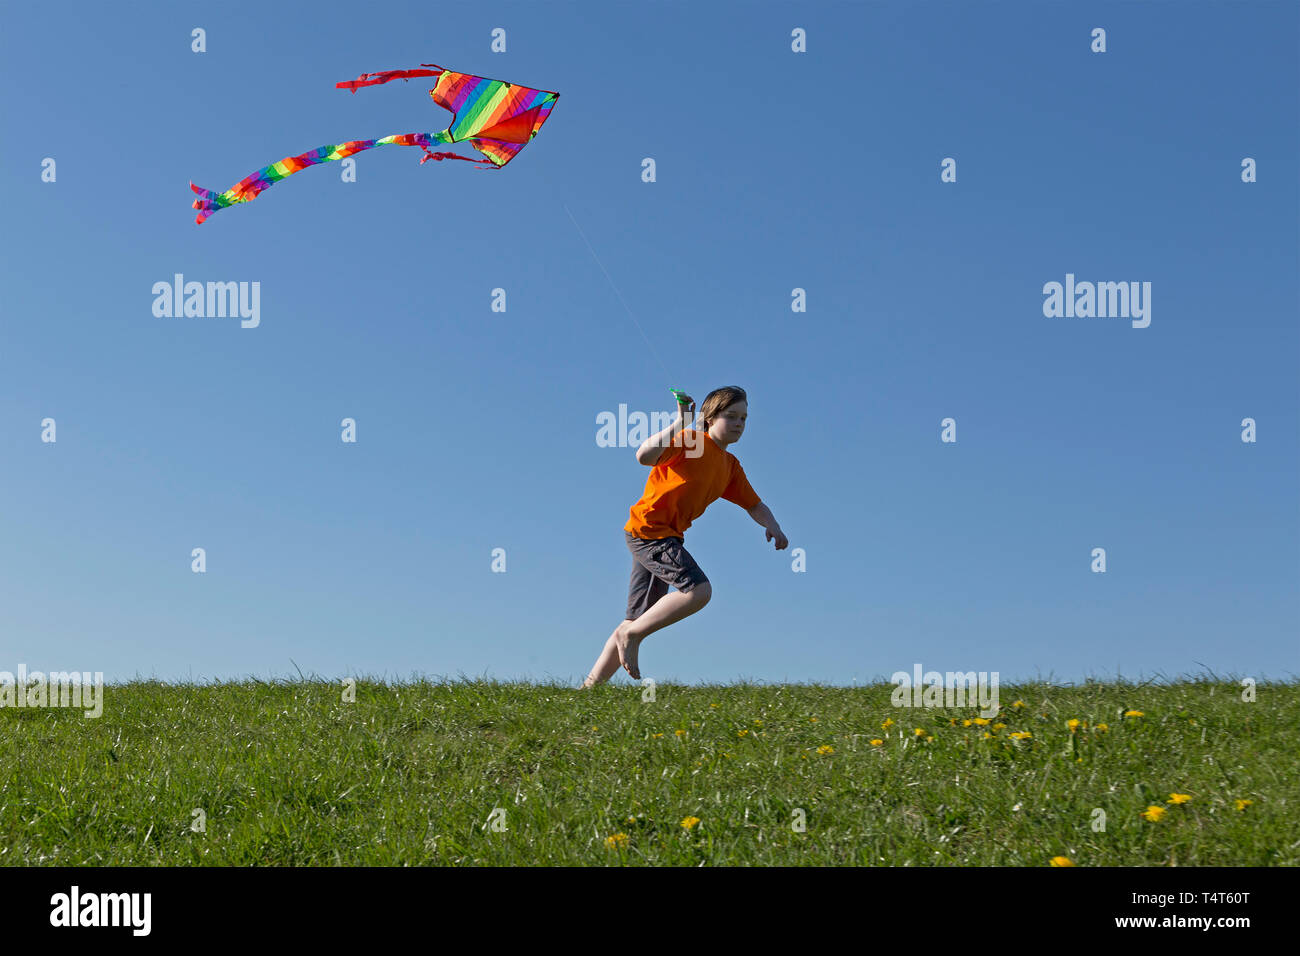 boy flying kite, Wilhelmsburg, Hamburg, Germany - Stock Image